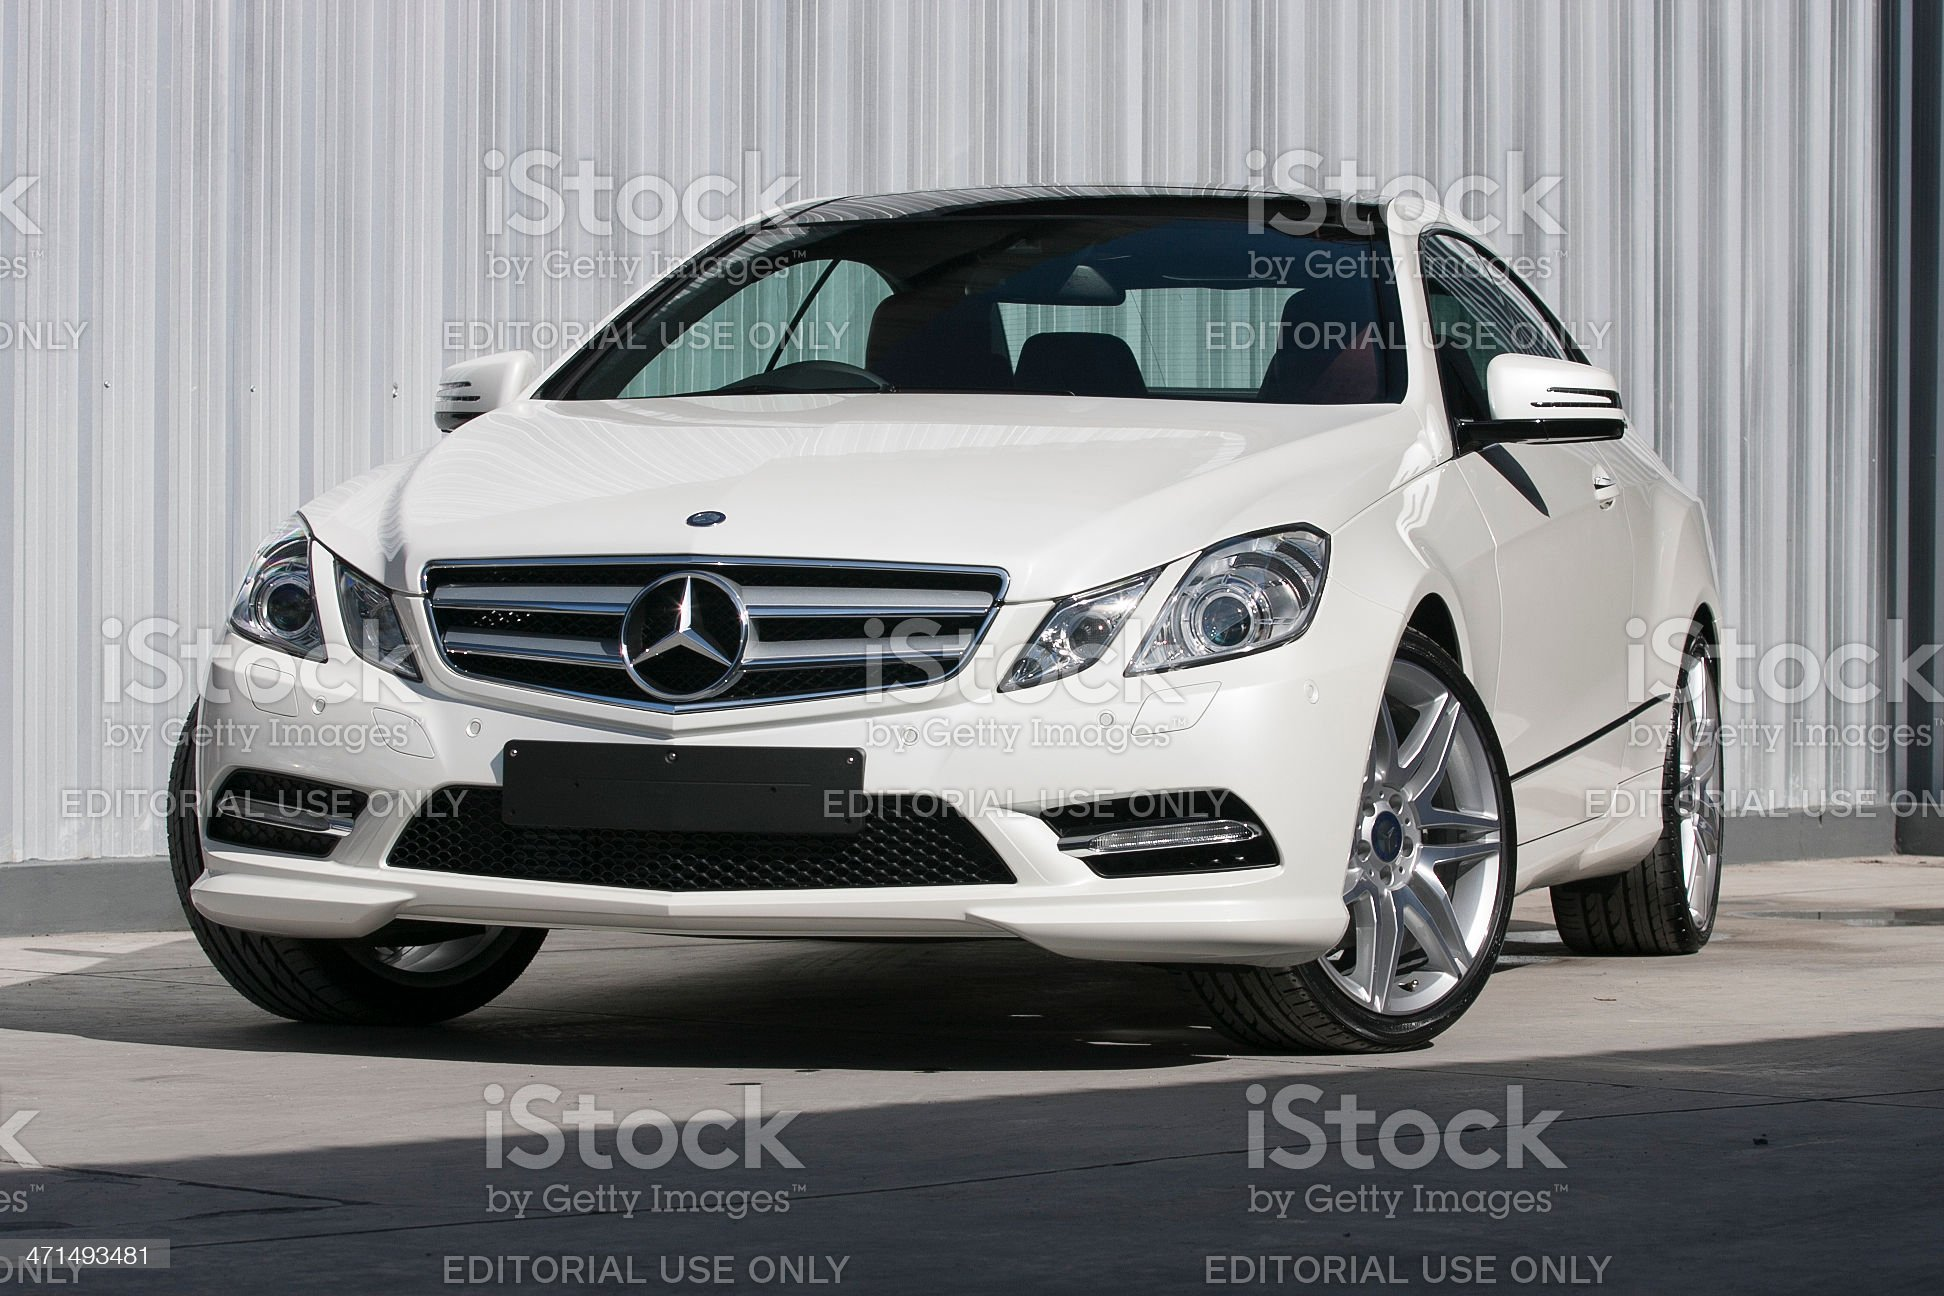 Frontview of a Mercedes-Benz E 200 coupe royalty-free stock photo